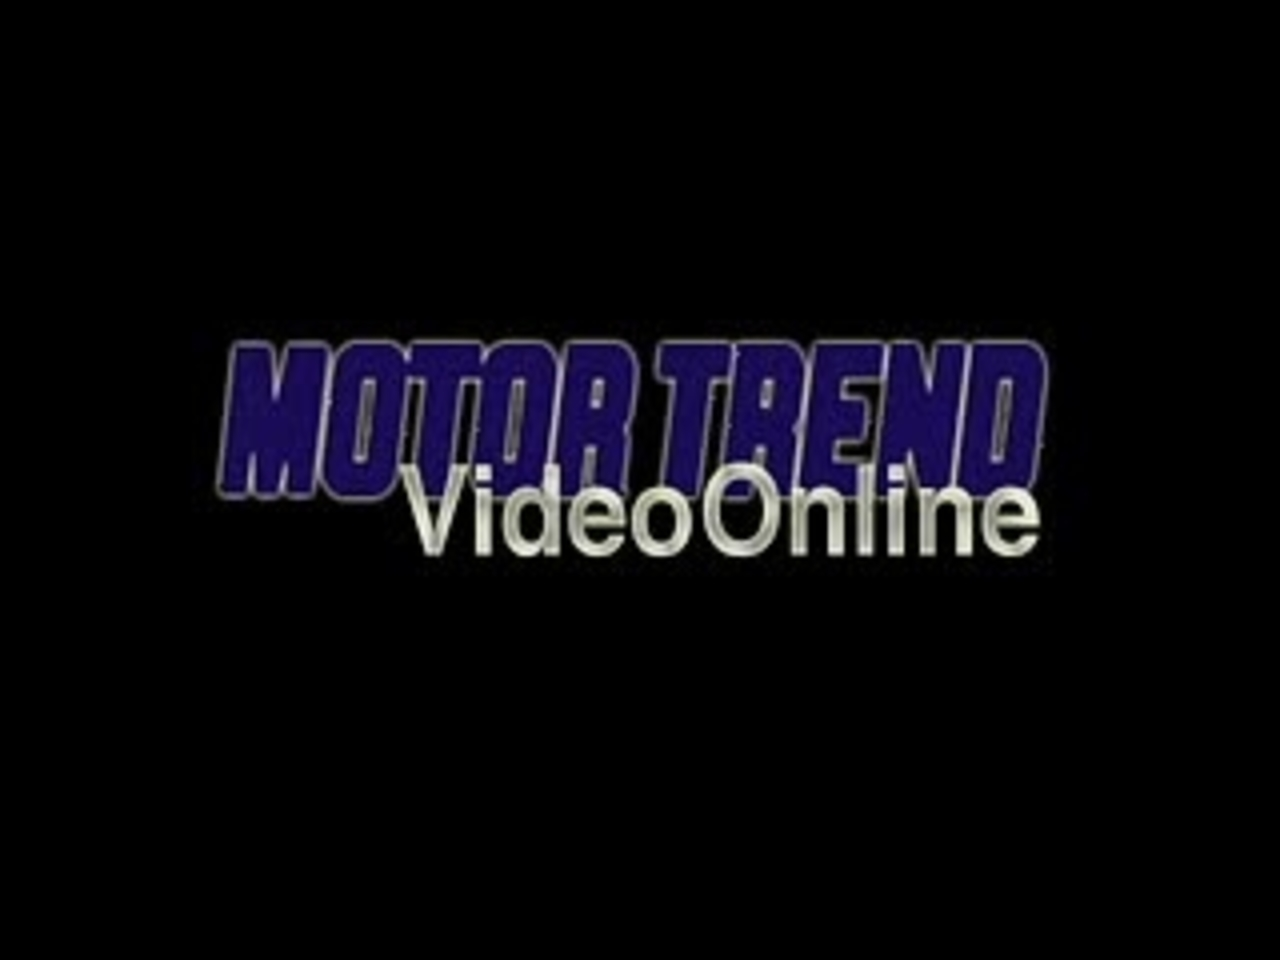 2003 New York: Lincoln Navigator K Concept & 2005 Mercury Mariner Video